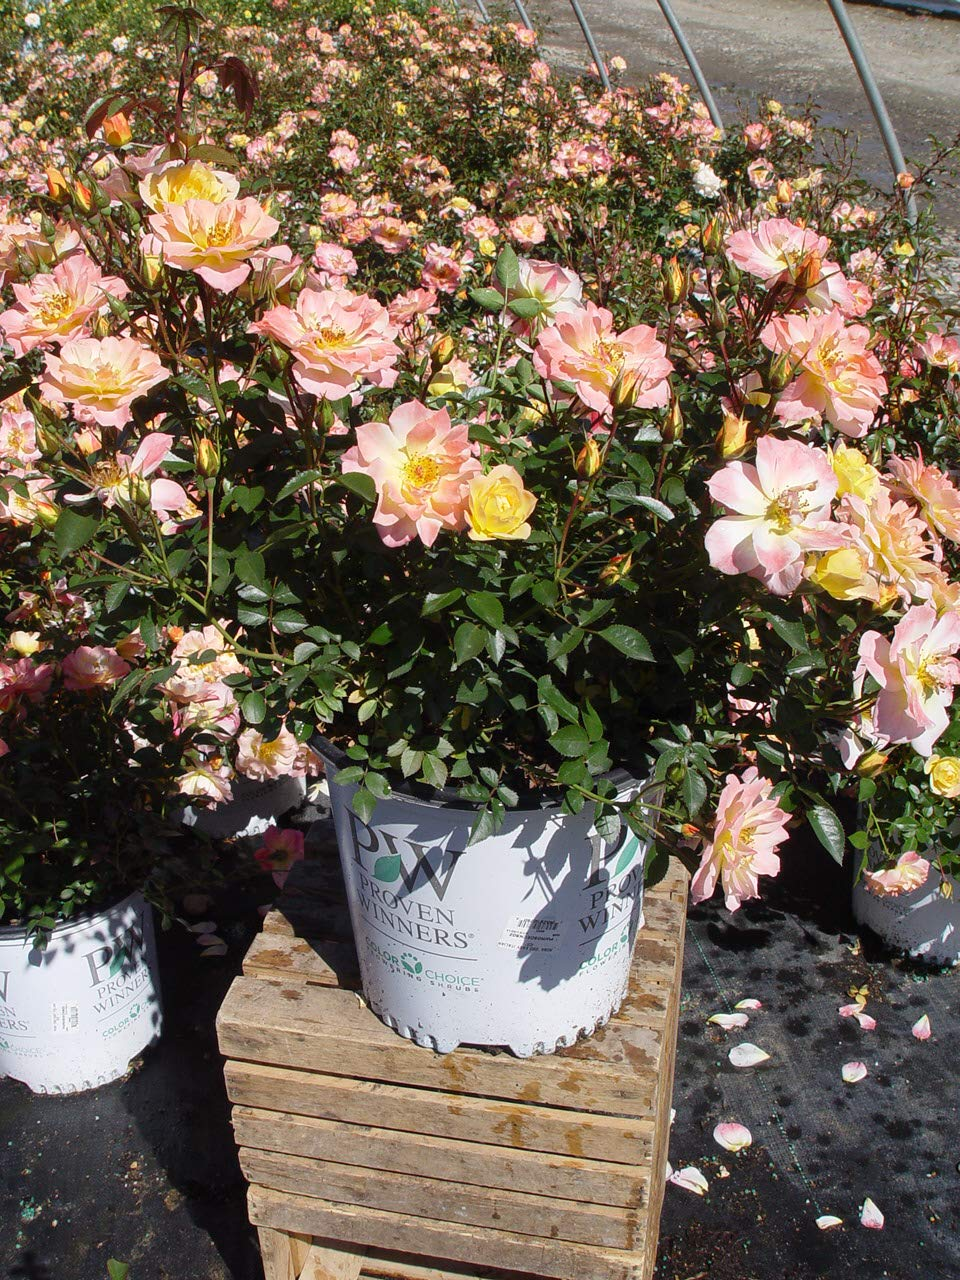 Proven Winners - Rosa OSO EASY Italian Ice (Rose) Rose, yellow w/pink, #2 - Size Container by Green Promise Farms (Image #2)